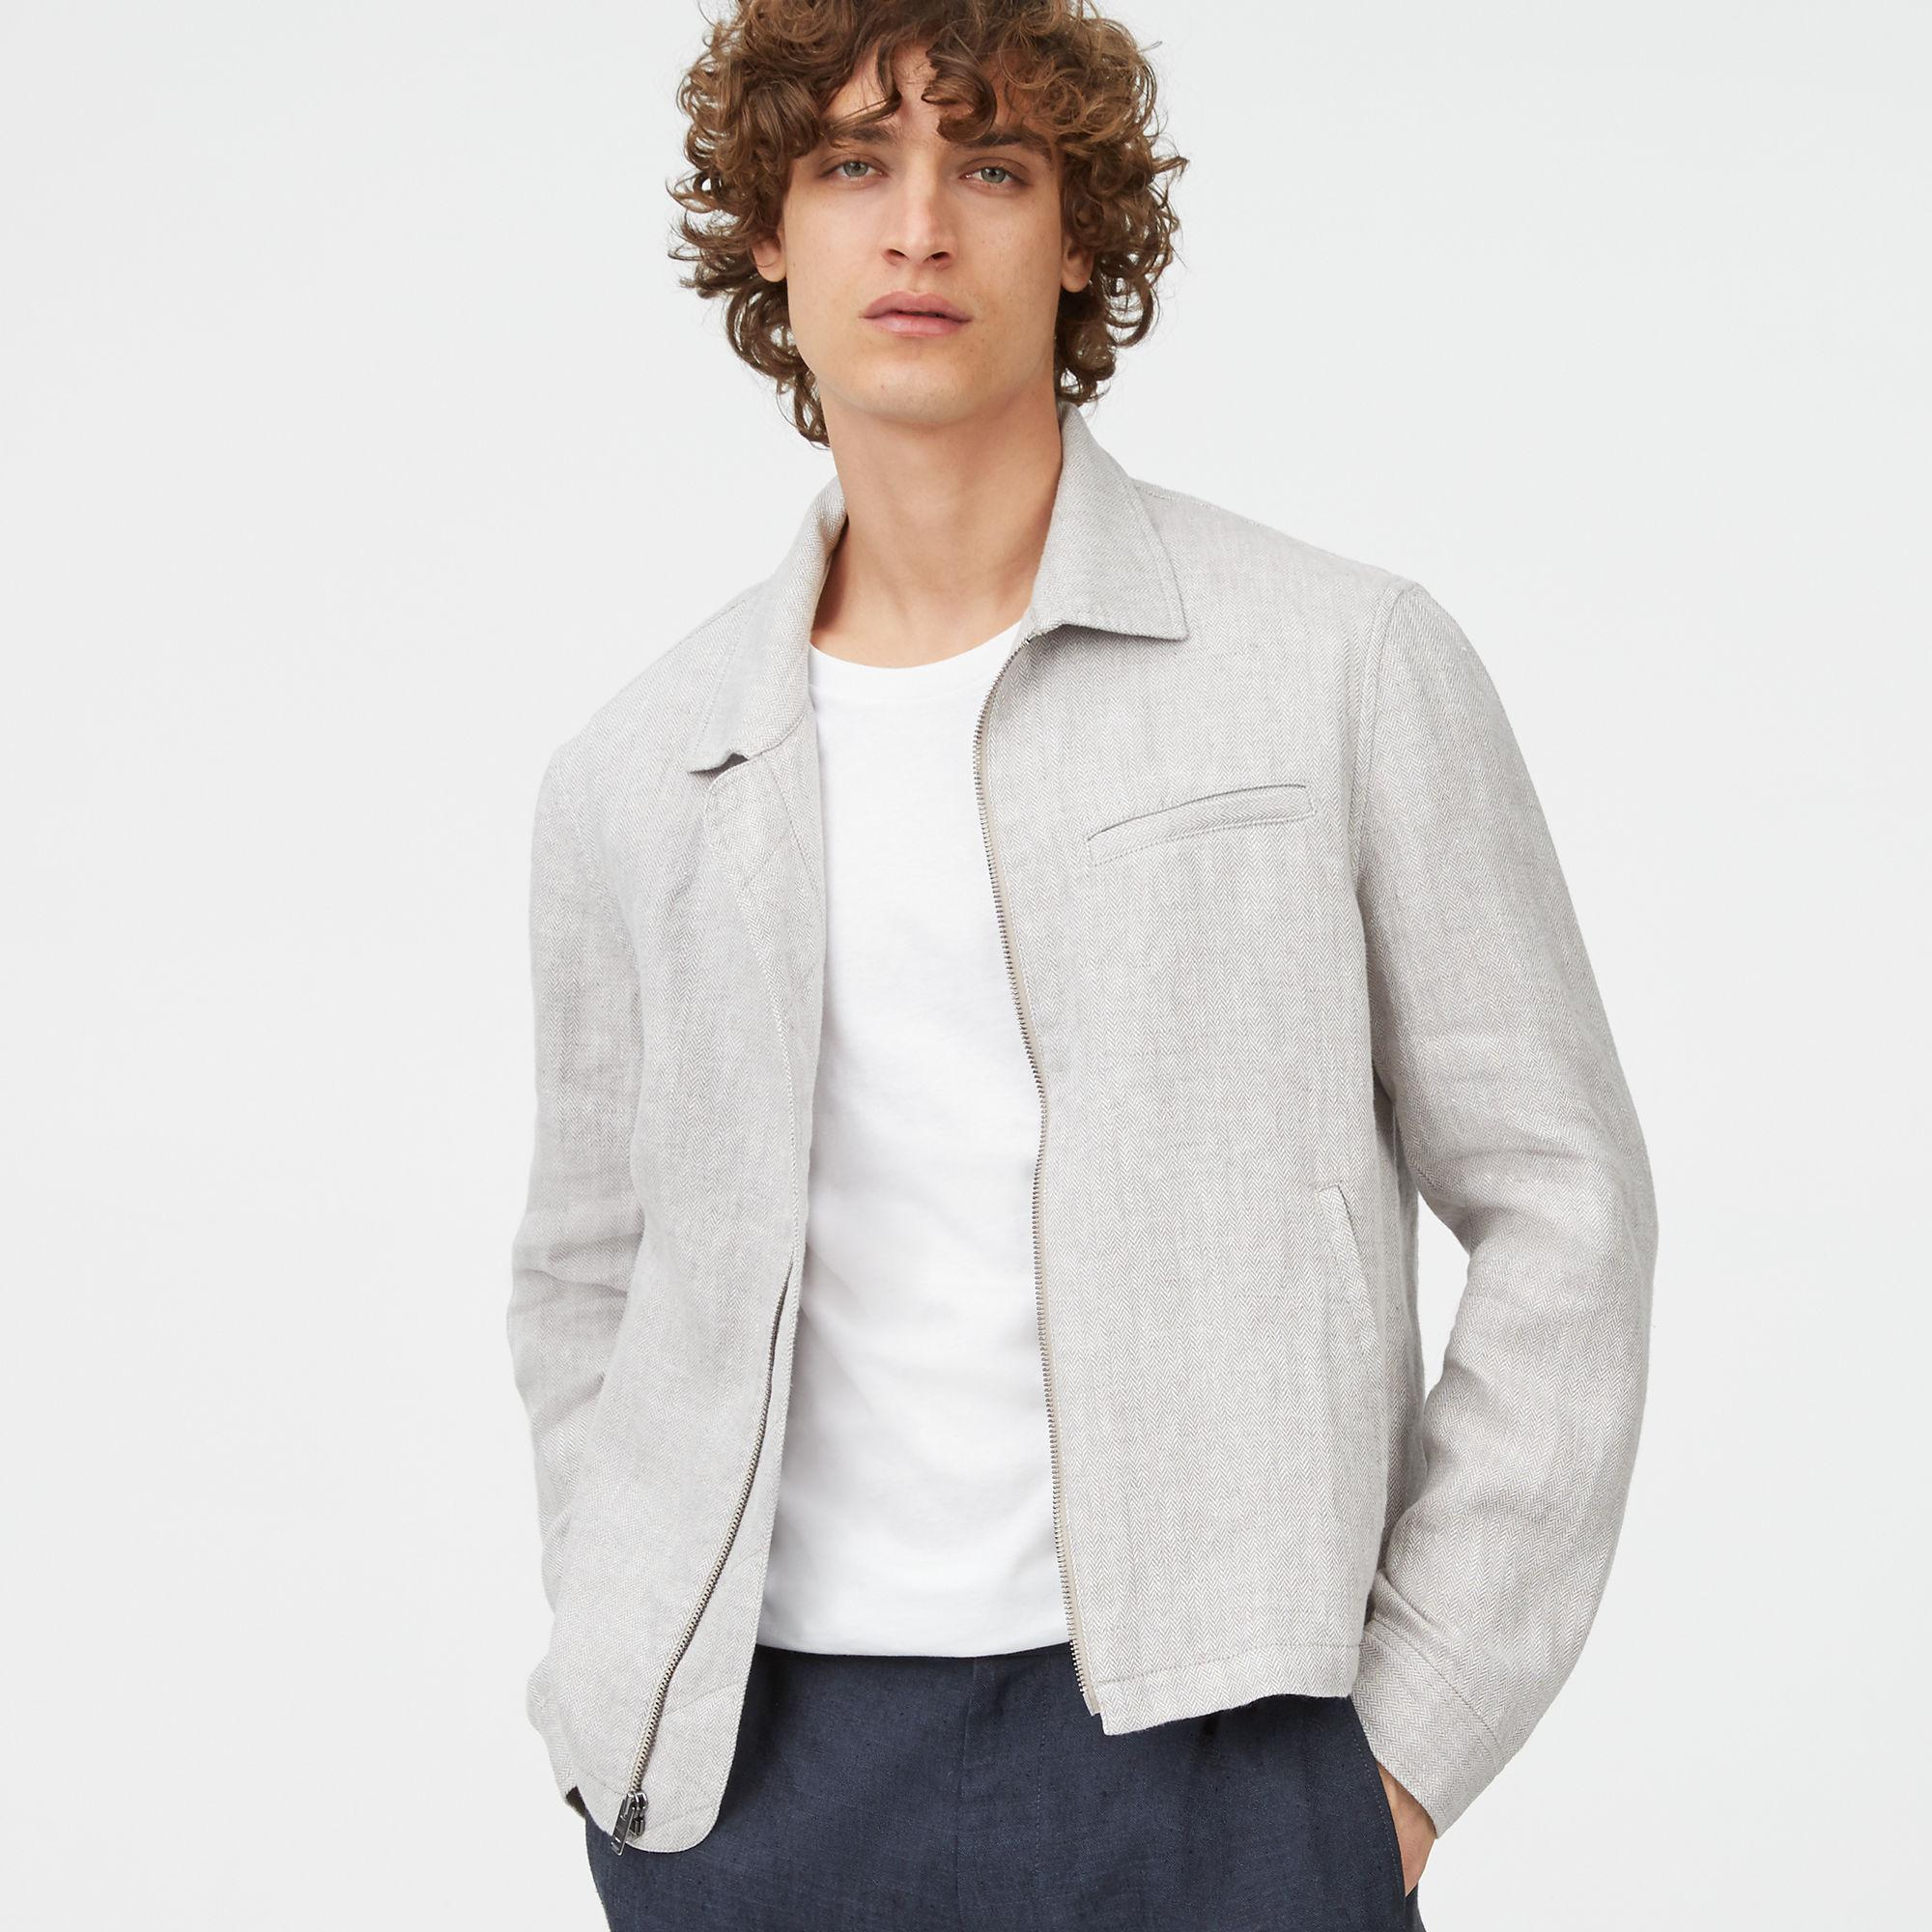 Short Lyst Club For Jacket Monaco Zip Gray Full Men In Azqtz